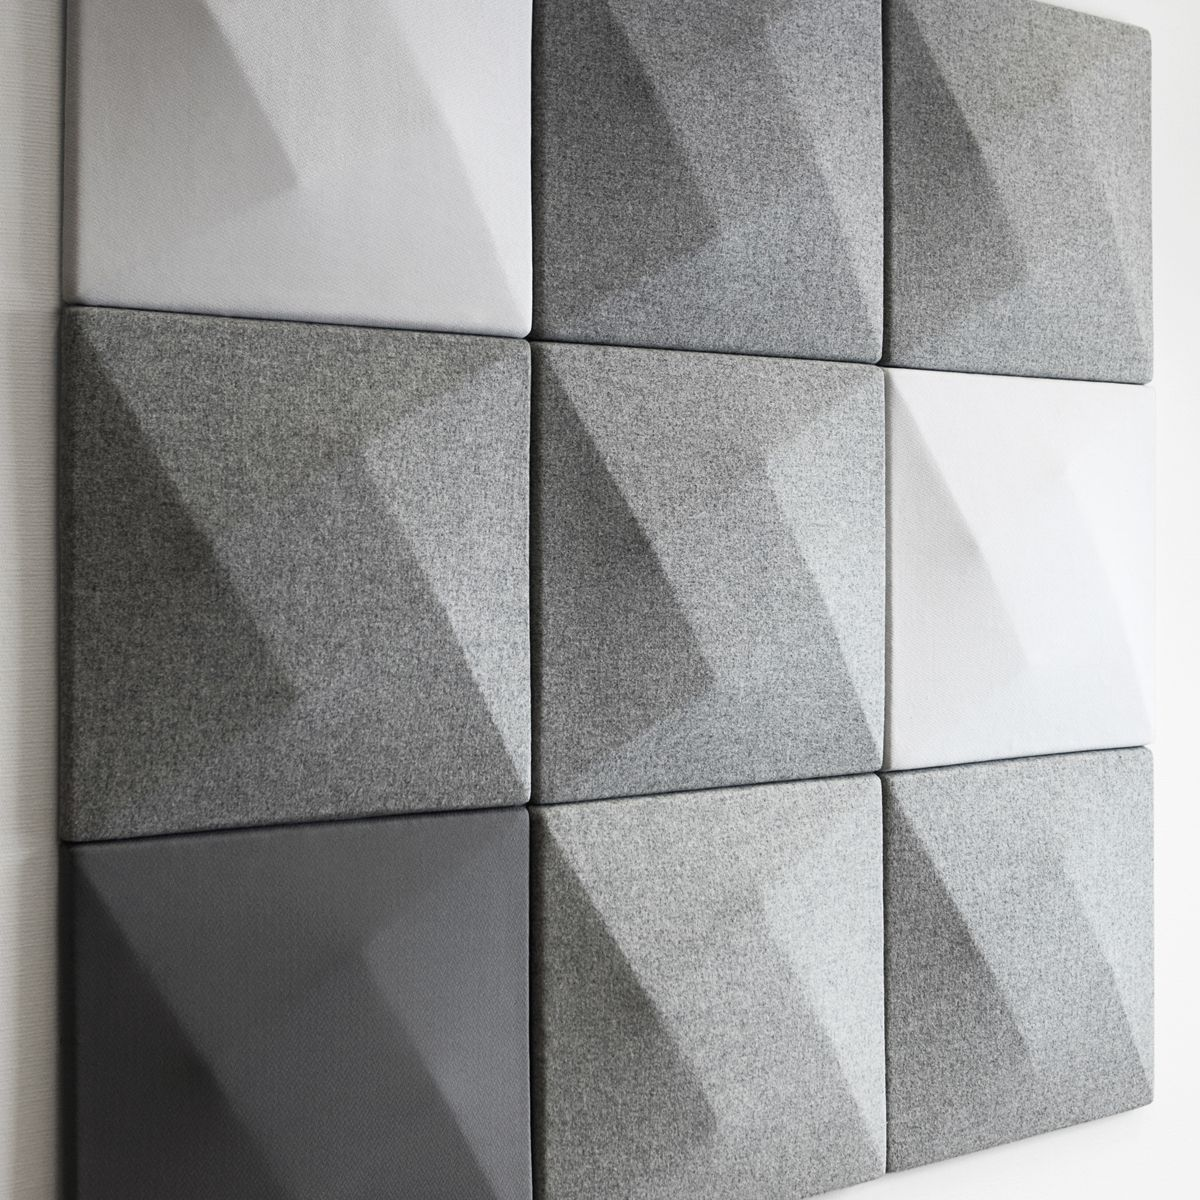 Bon Modern Sound Absorbing Wall Panels For Home Or Office Available From  Stardust Modern Design These Beautiful And Su.